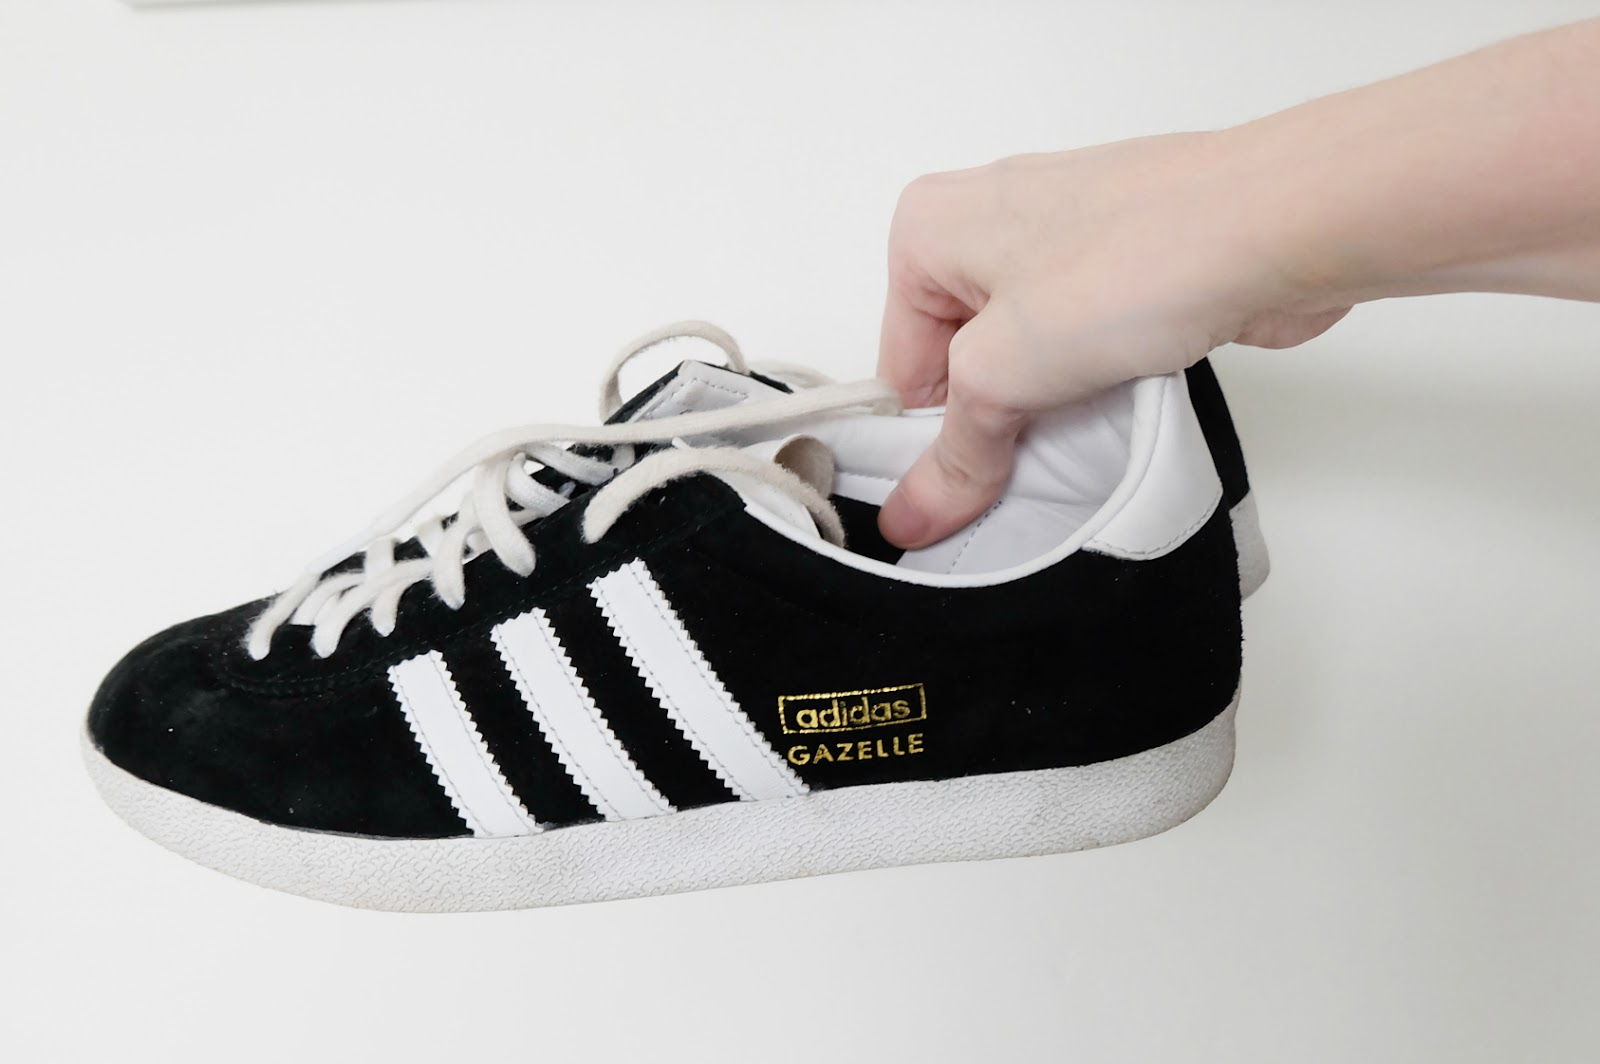 Adidas Gazelle review, adidas gazelle black